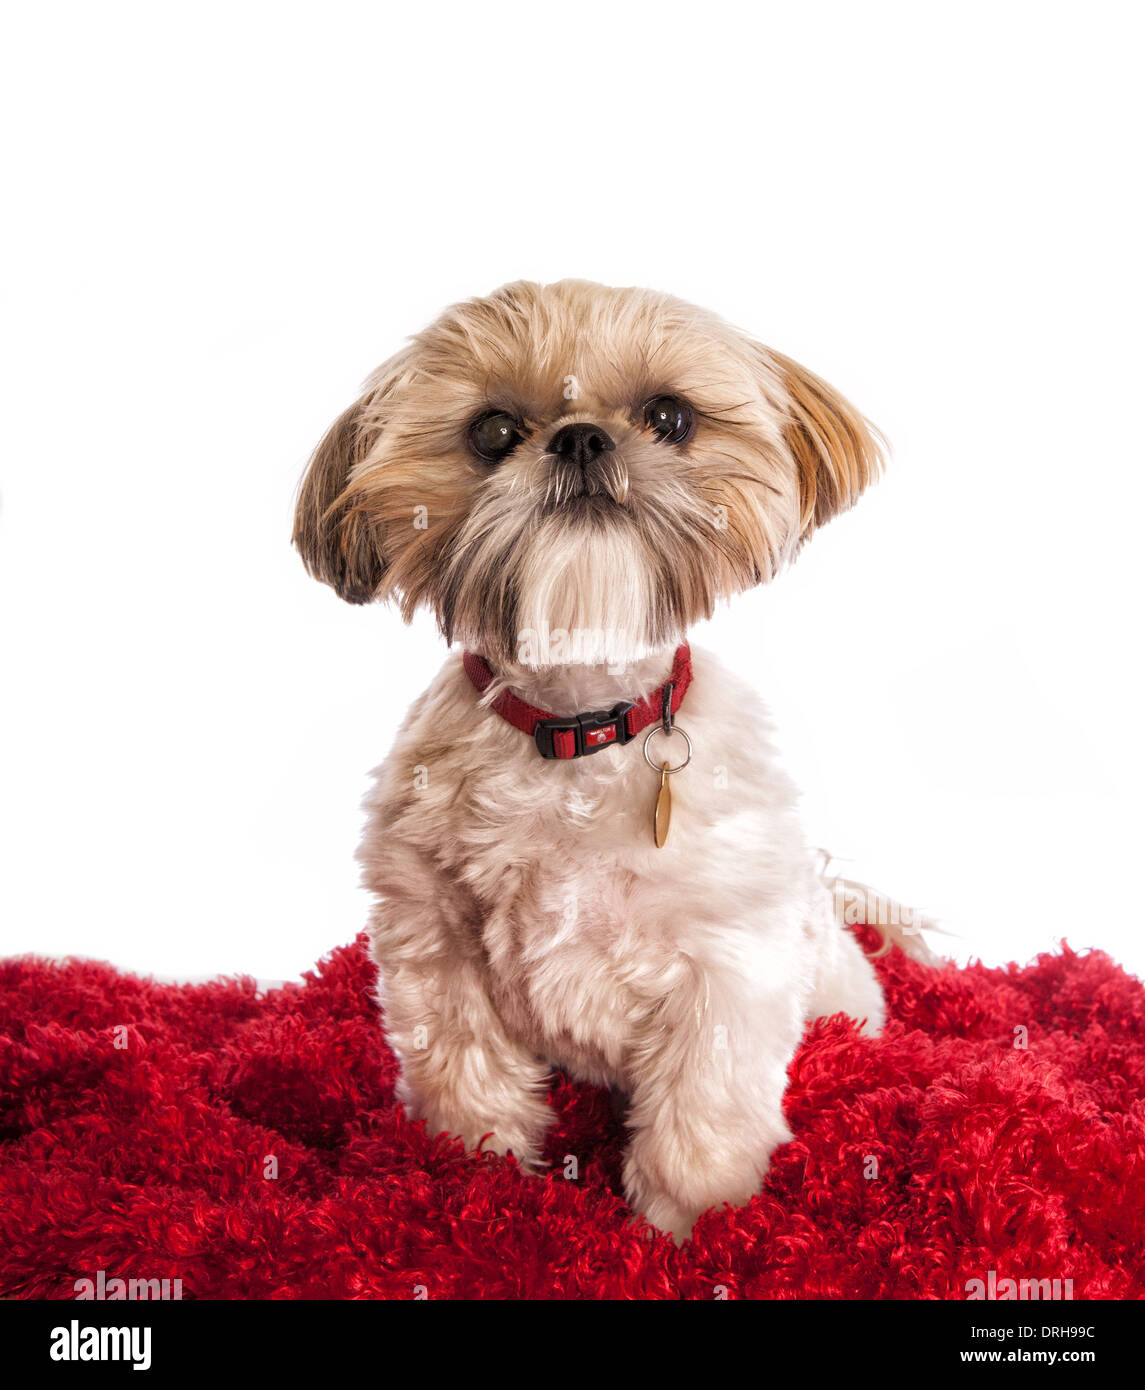 Shih Tzu Funny High Resolution Stock Photography And Images Alamy